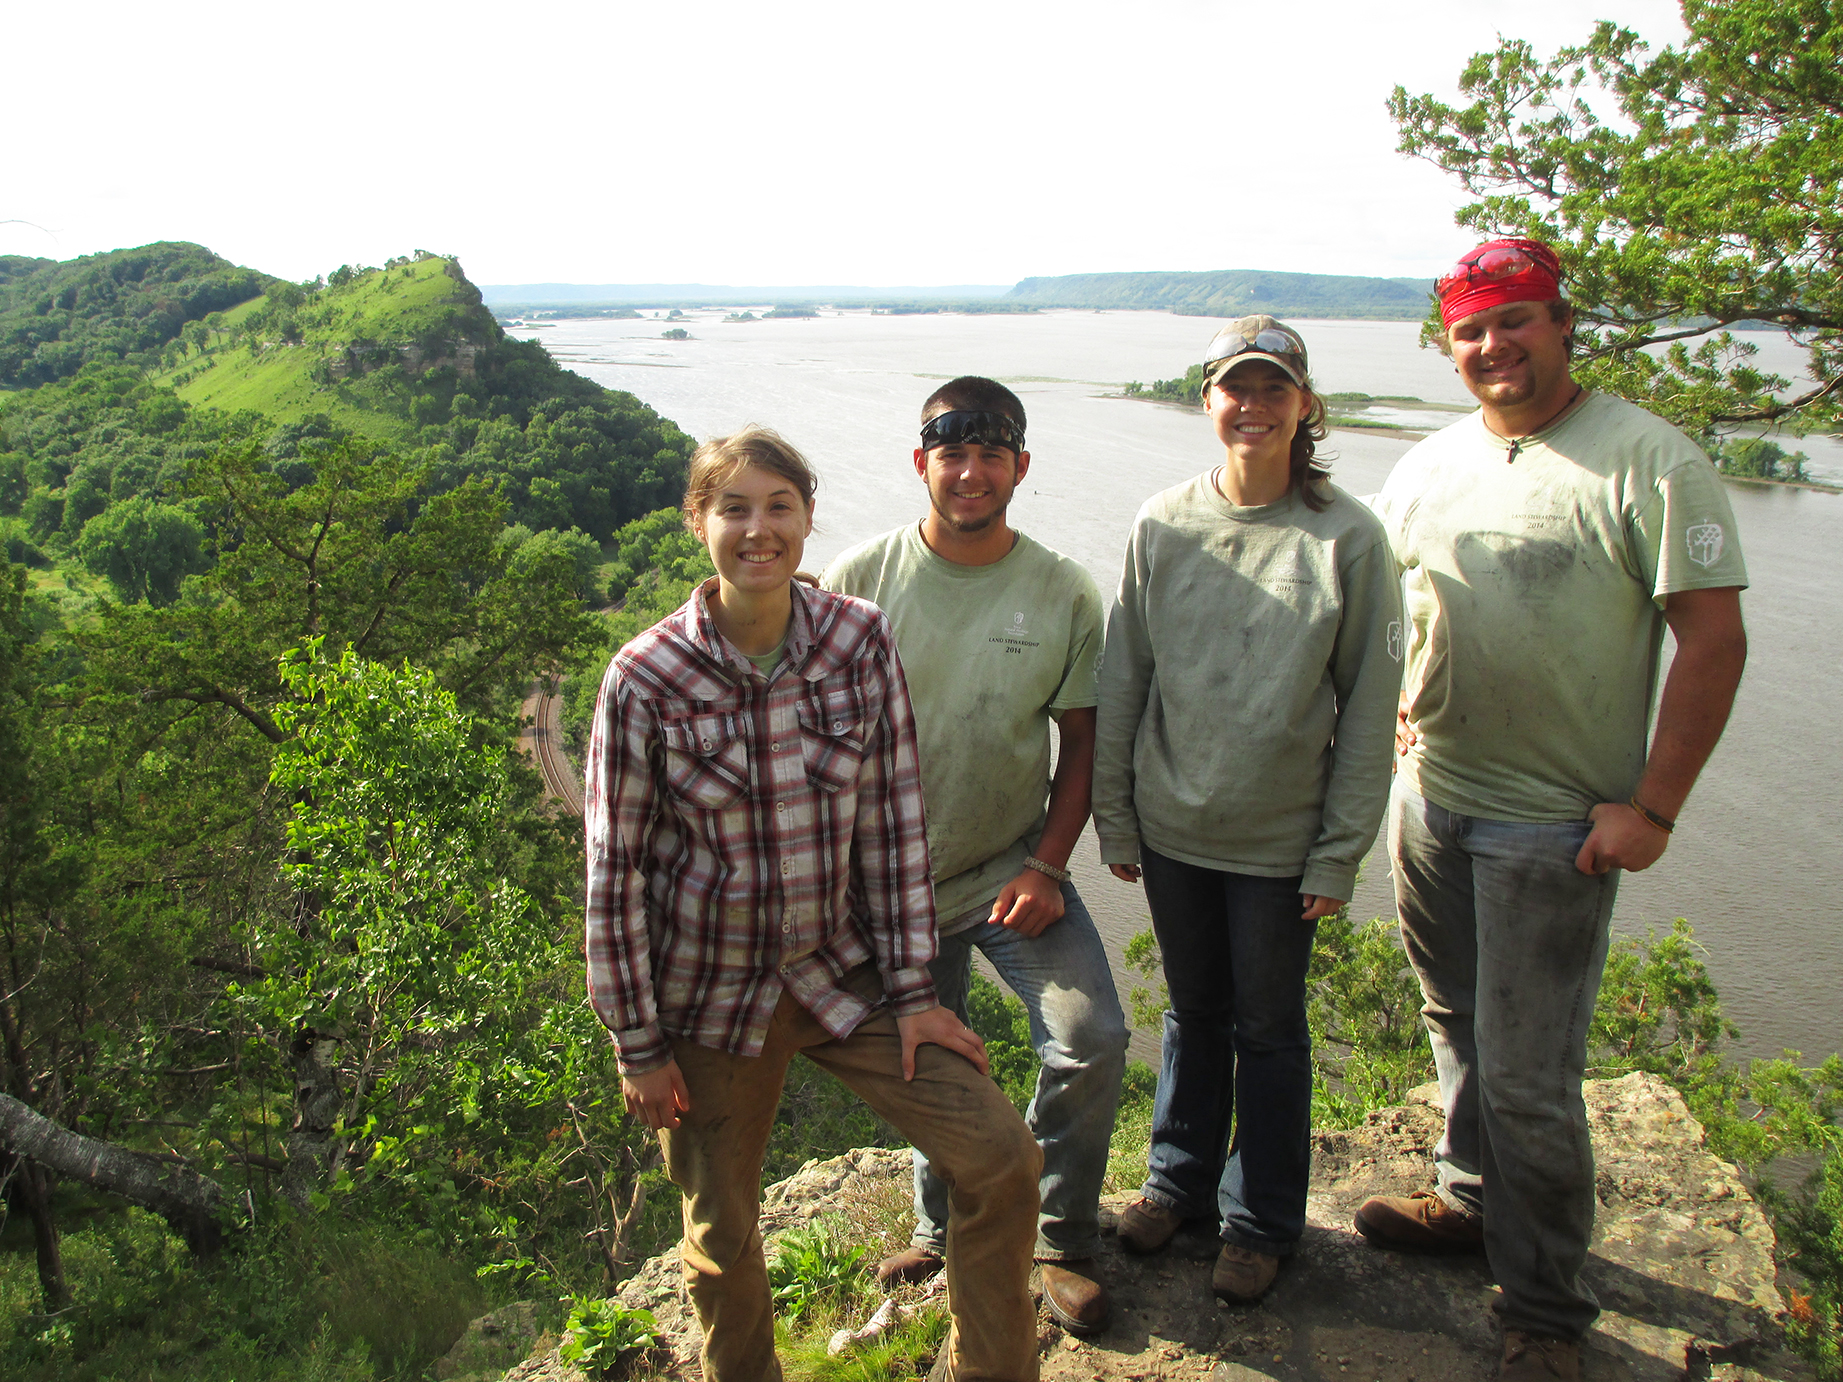 INHF Blufflands interns along the Mississippi